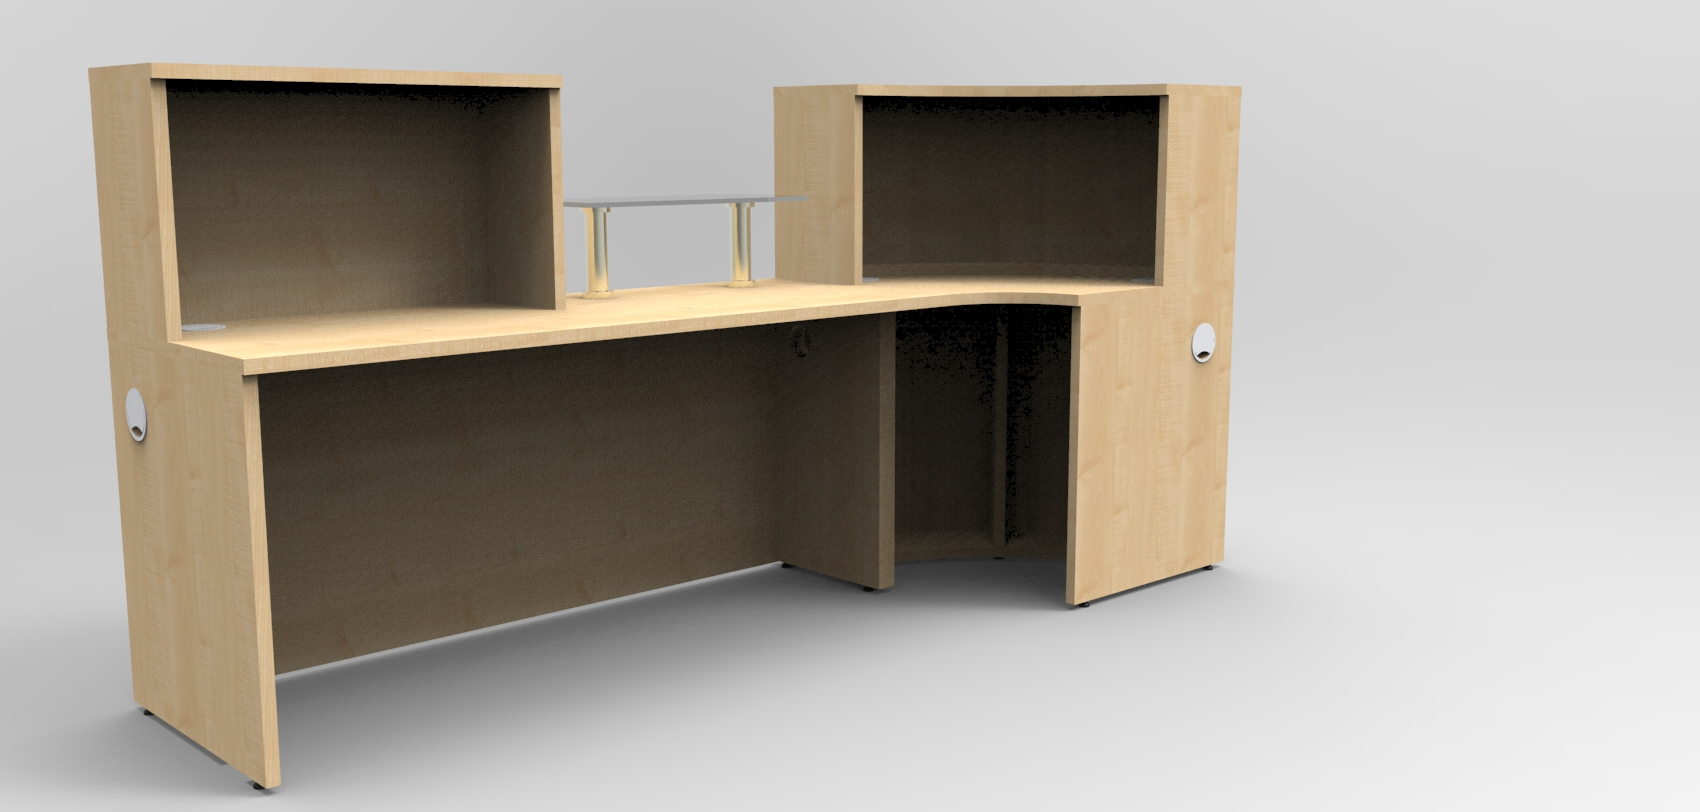 Image 40FR - Flex Bespoke Maple with Glass shelf